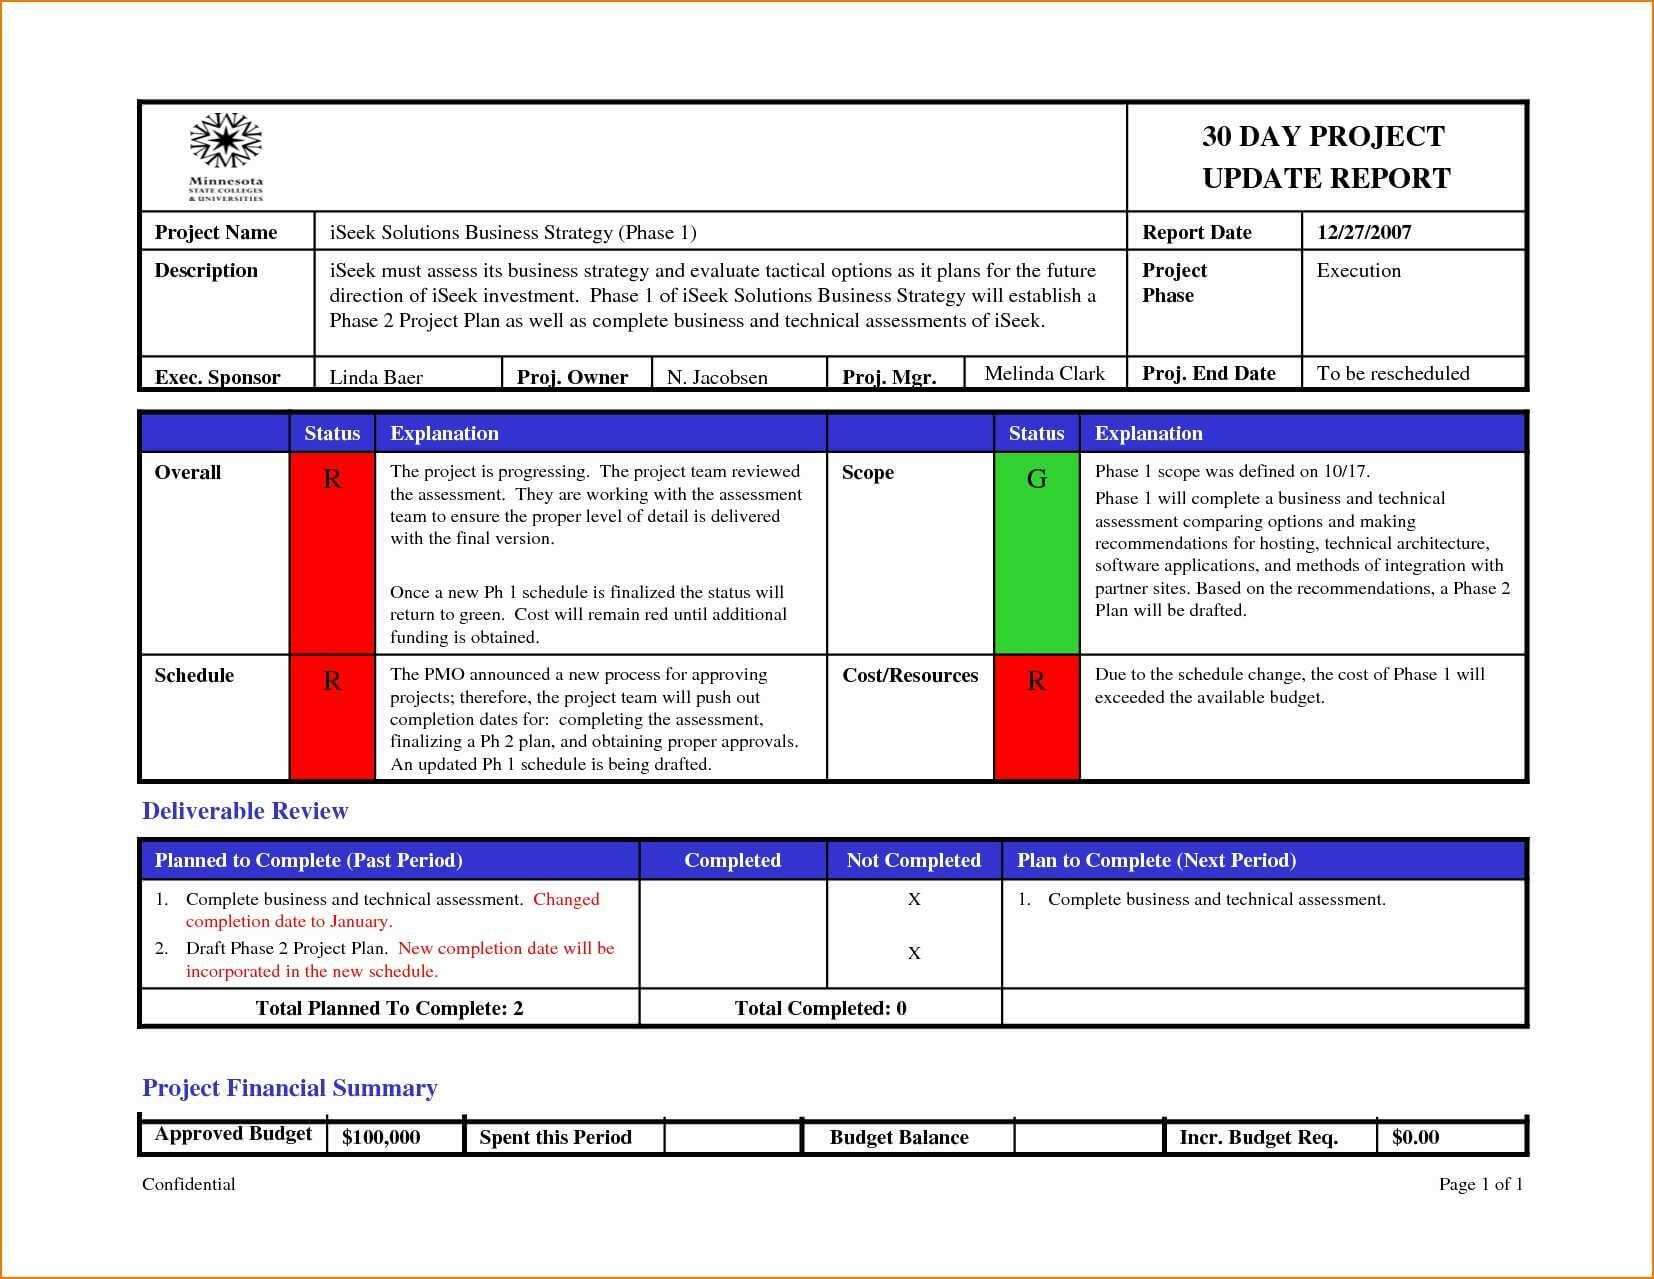 Project Management Status Report Template - Atlantaauctionco within Project Management Status Report Template